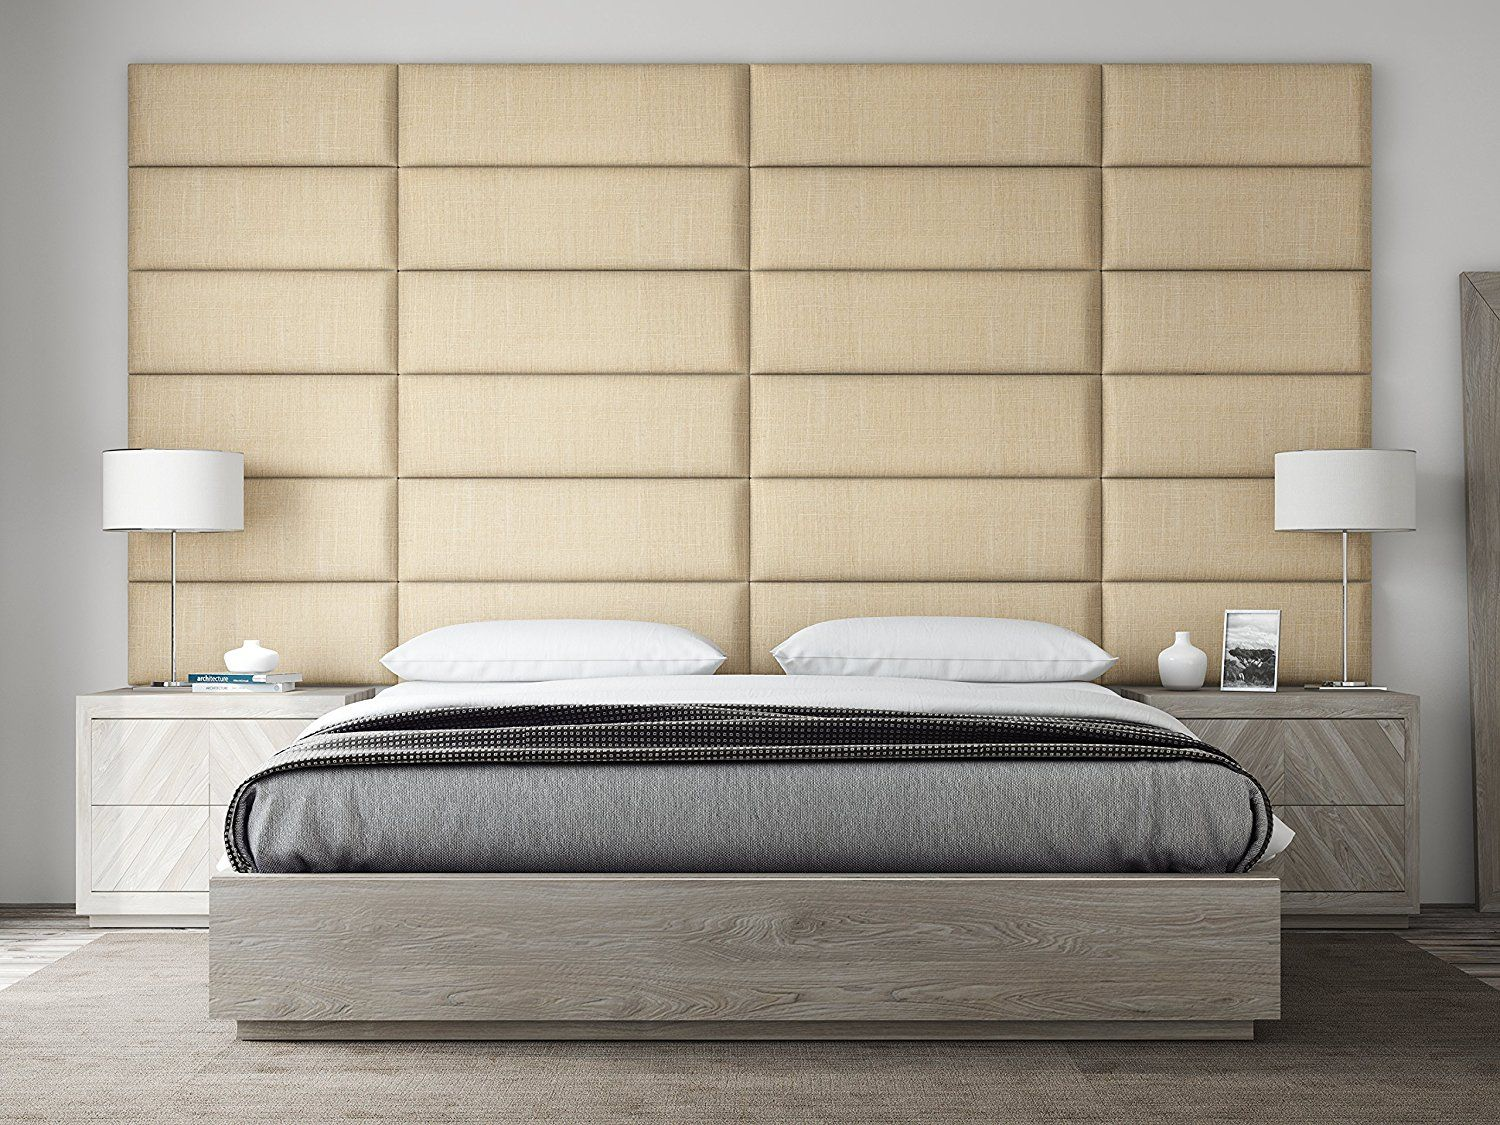 Adding Color Texture And Interest To Your Bedroom Isn T Limited